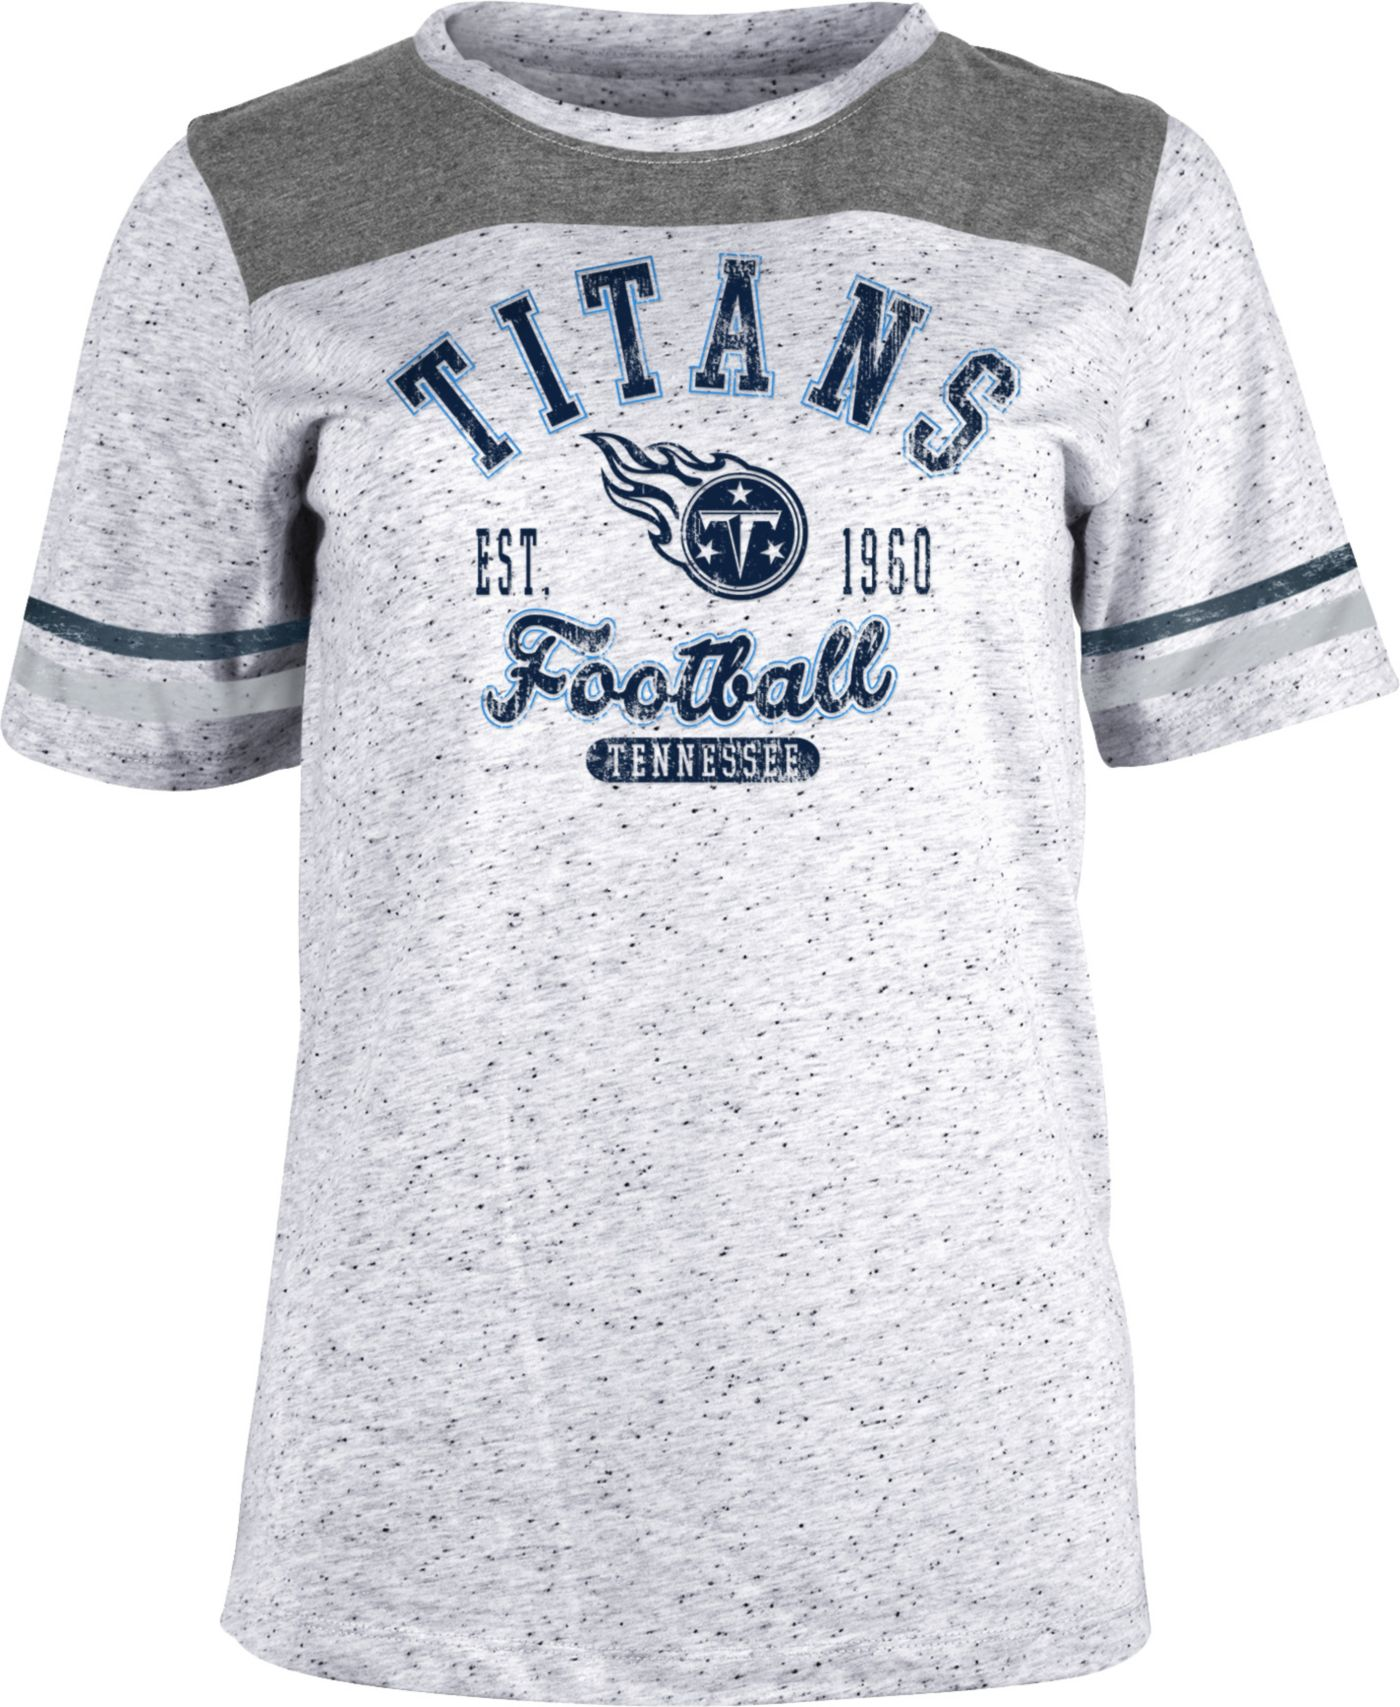 NFL Team Apparel Women's Tennessee Titans Peppercorn T-Shirt